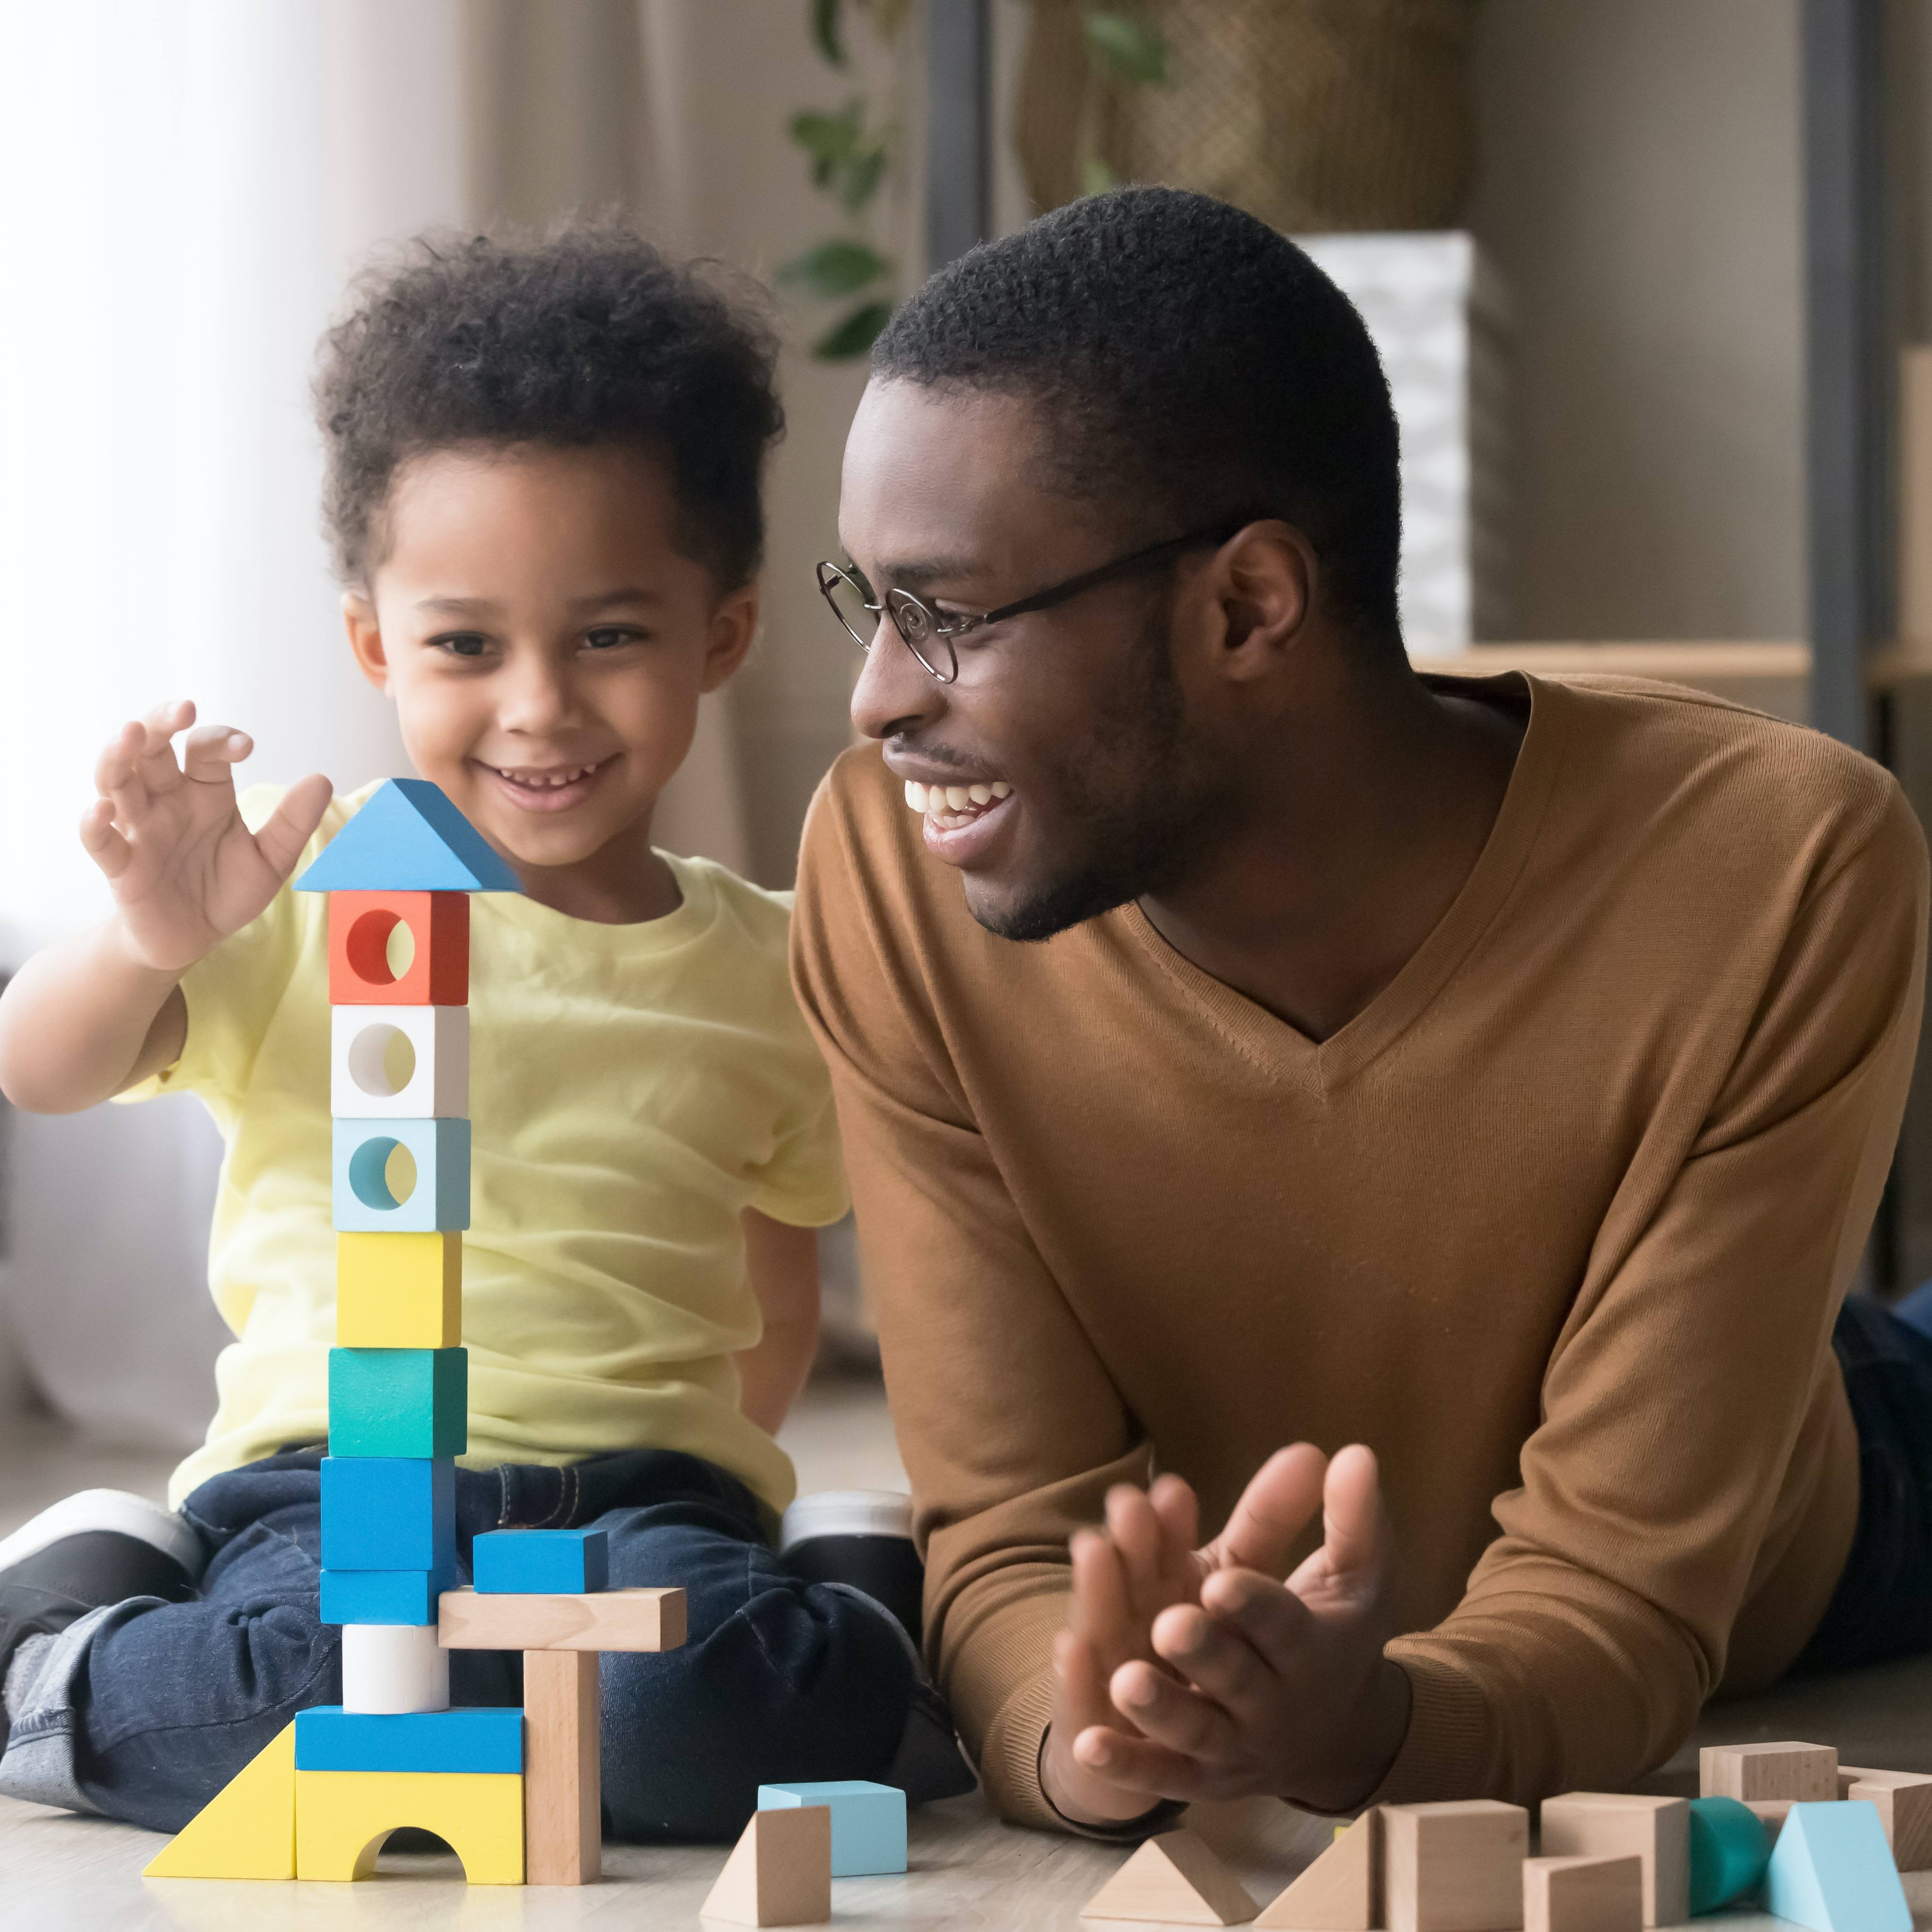 Happy cute little son playing game with black dad building blocks_